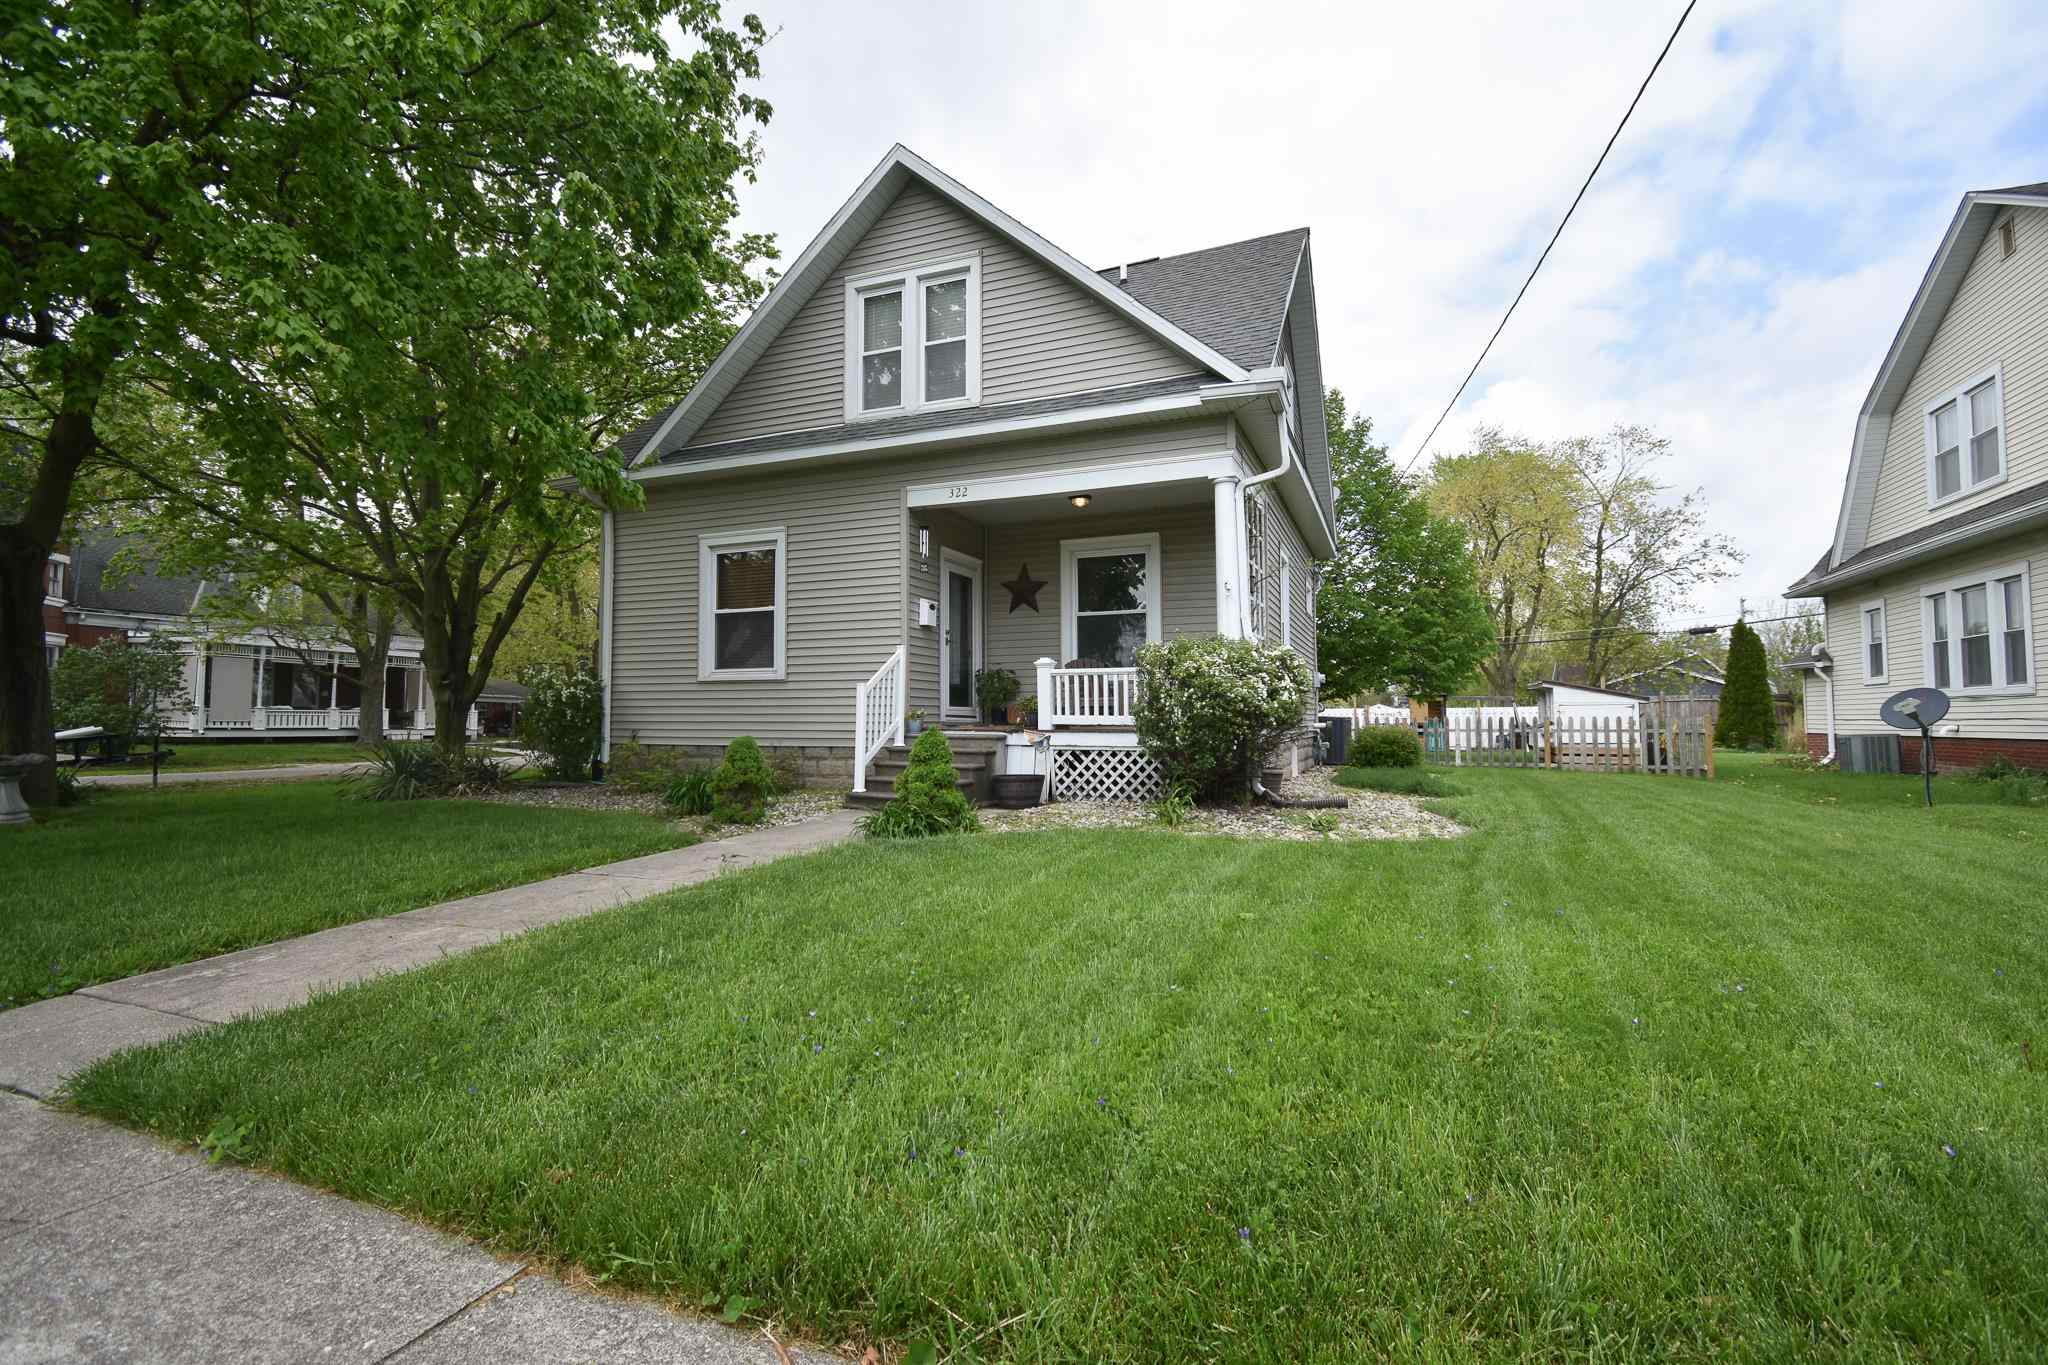 322 W MADISON Property Photo - Girard, IL real estate listing